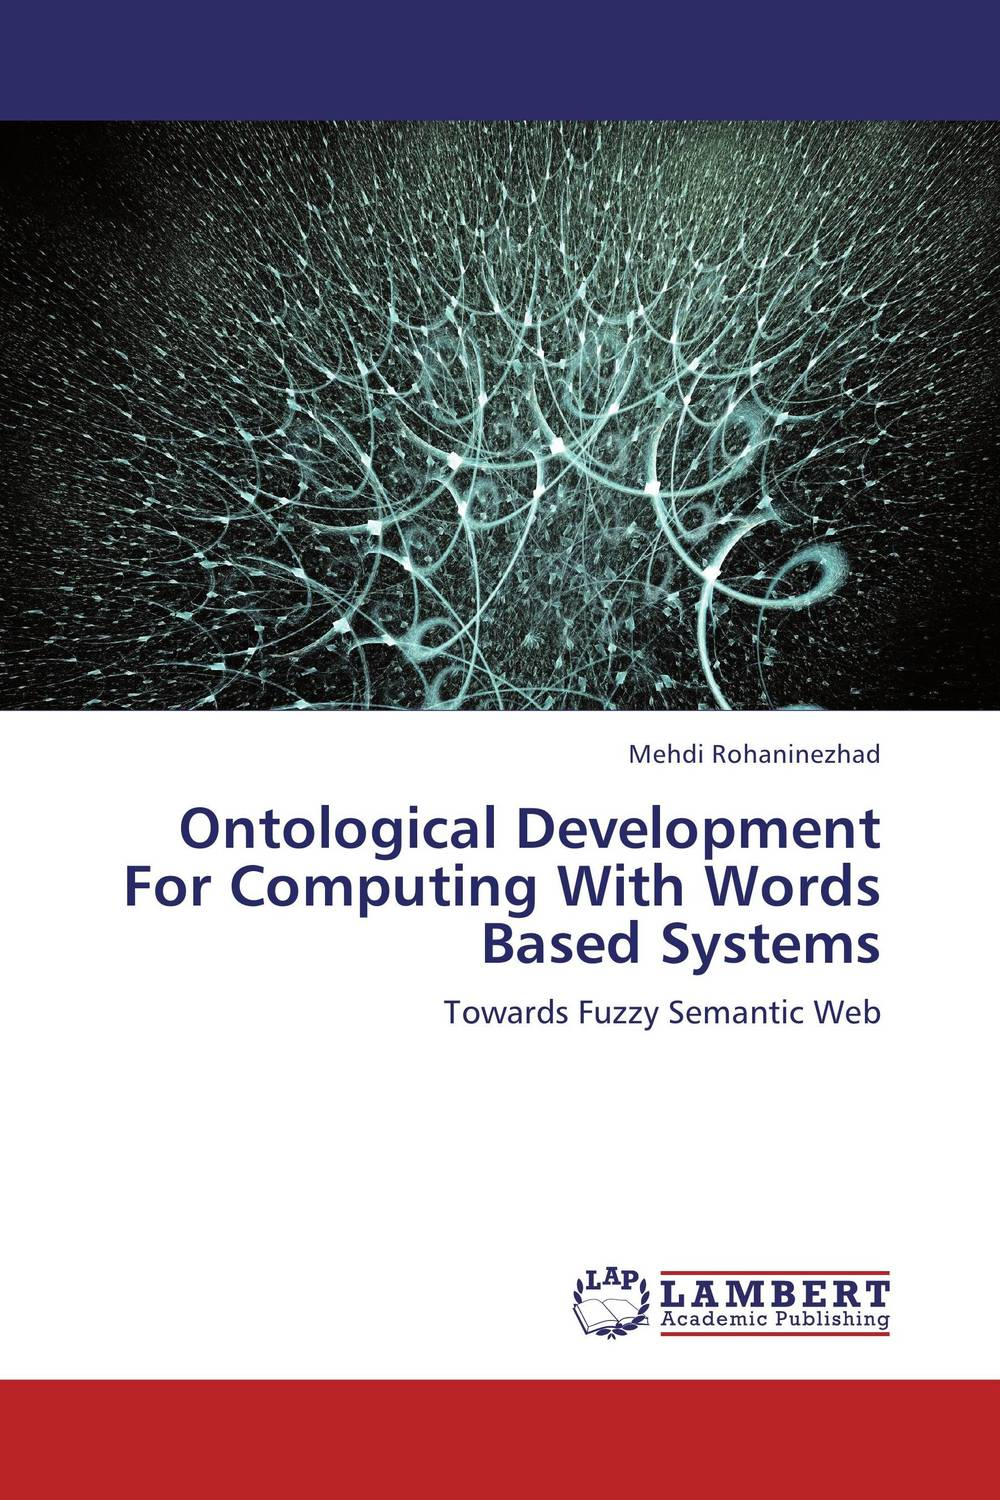 Ontological Development For Computing With Words Based Systems java language bindings for space based computing